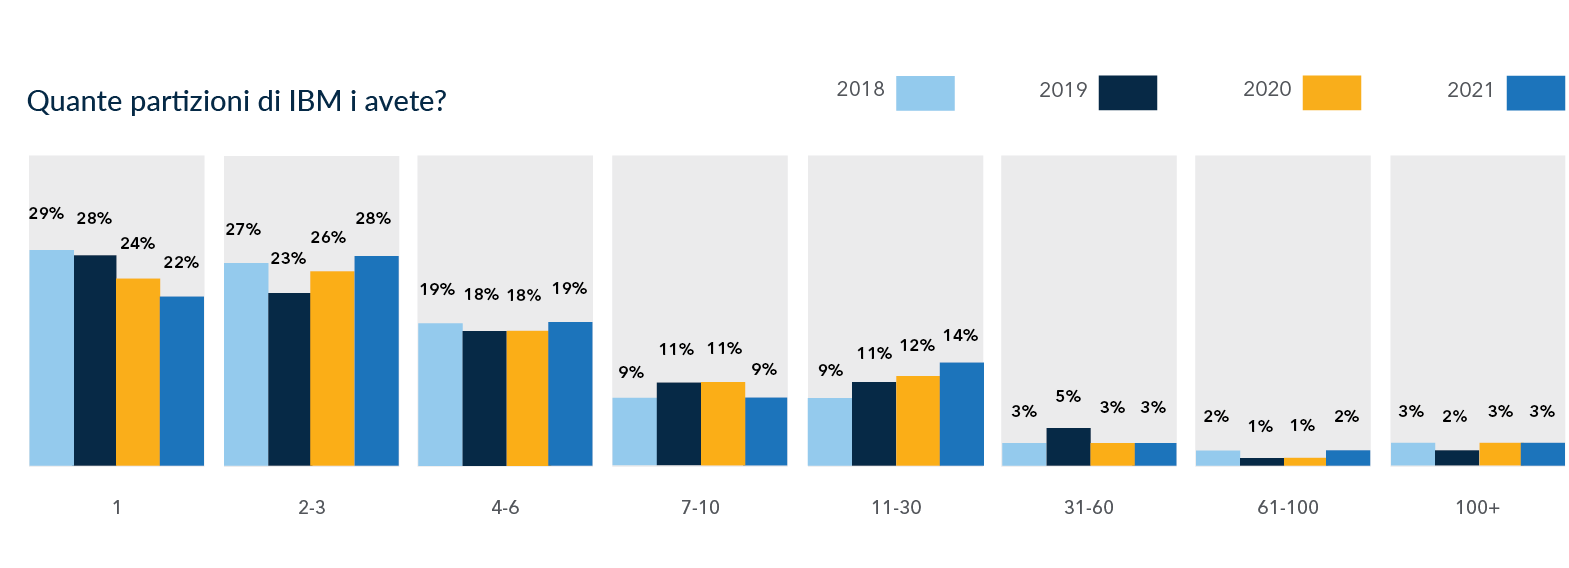 2021 HelpSystems Marketplace Study IBM i in the data center